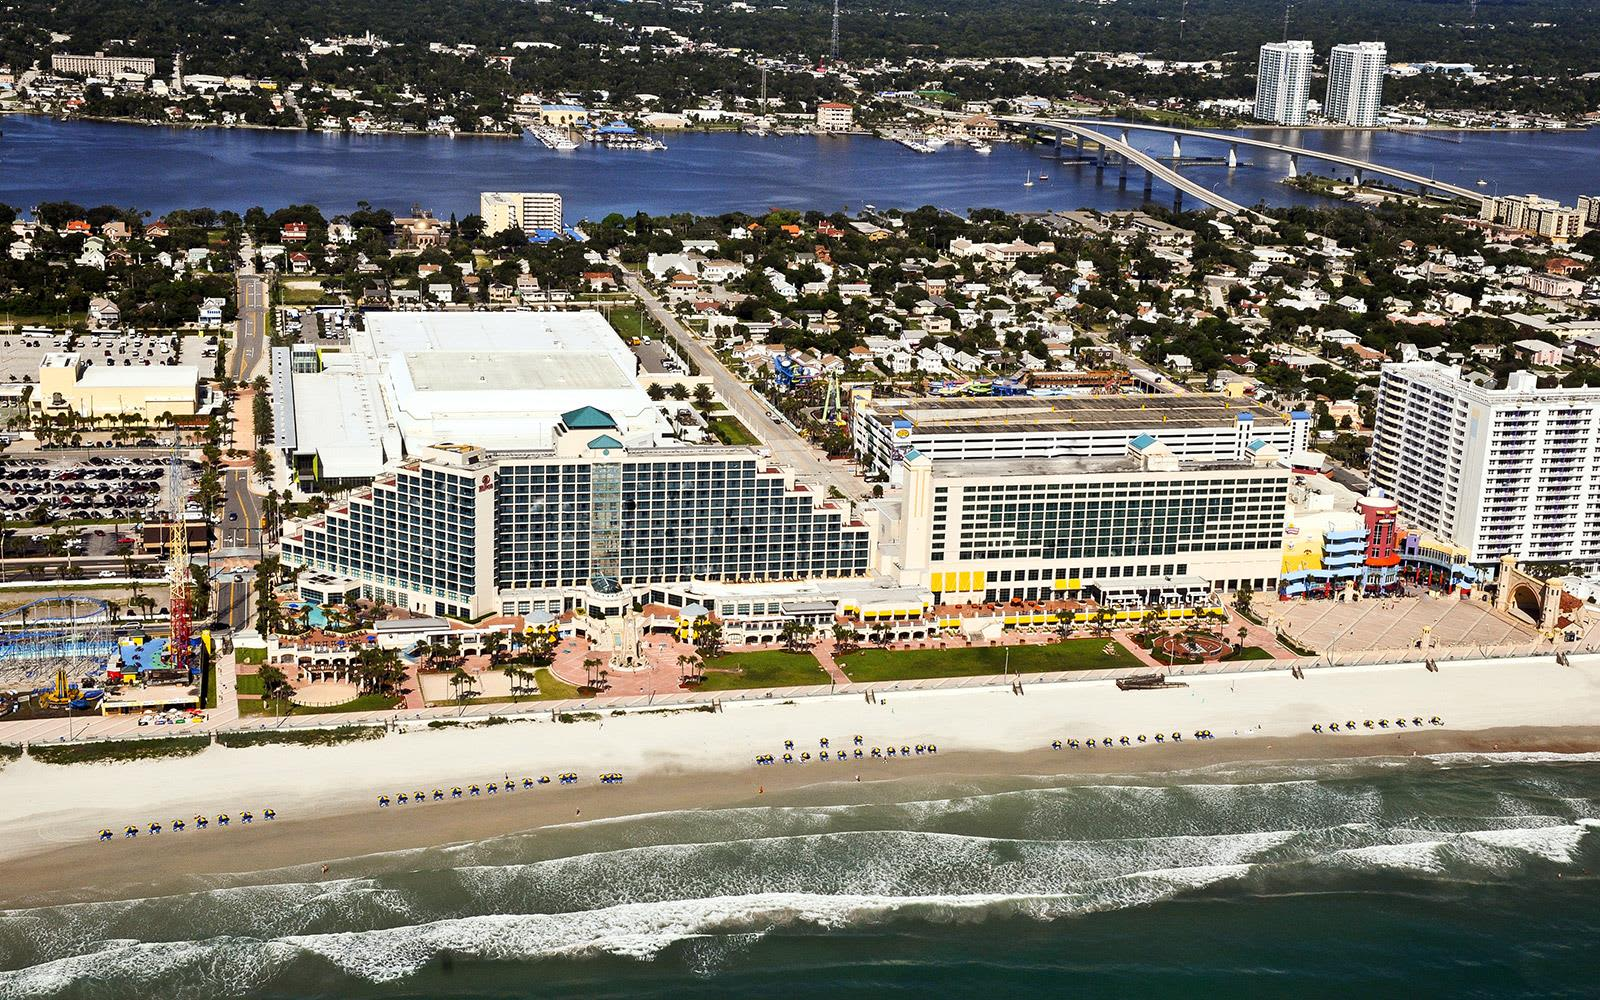 Hilton Daytona Beach Resort/Ocean Walk Village Thanks